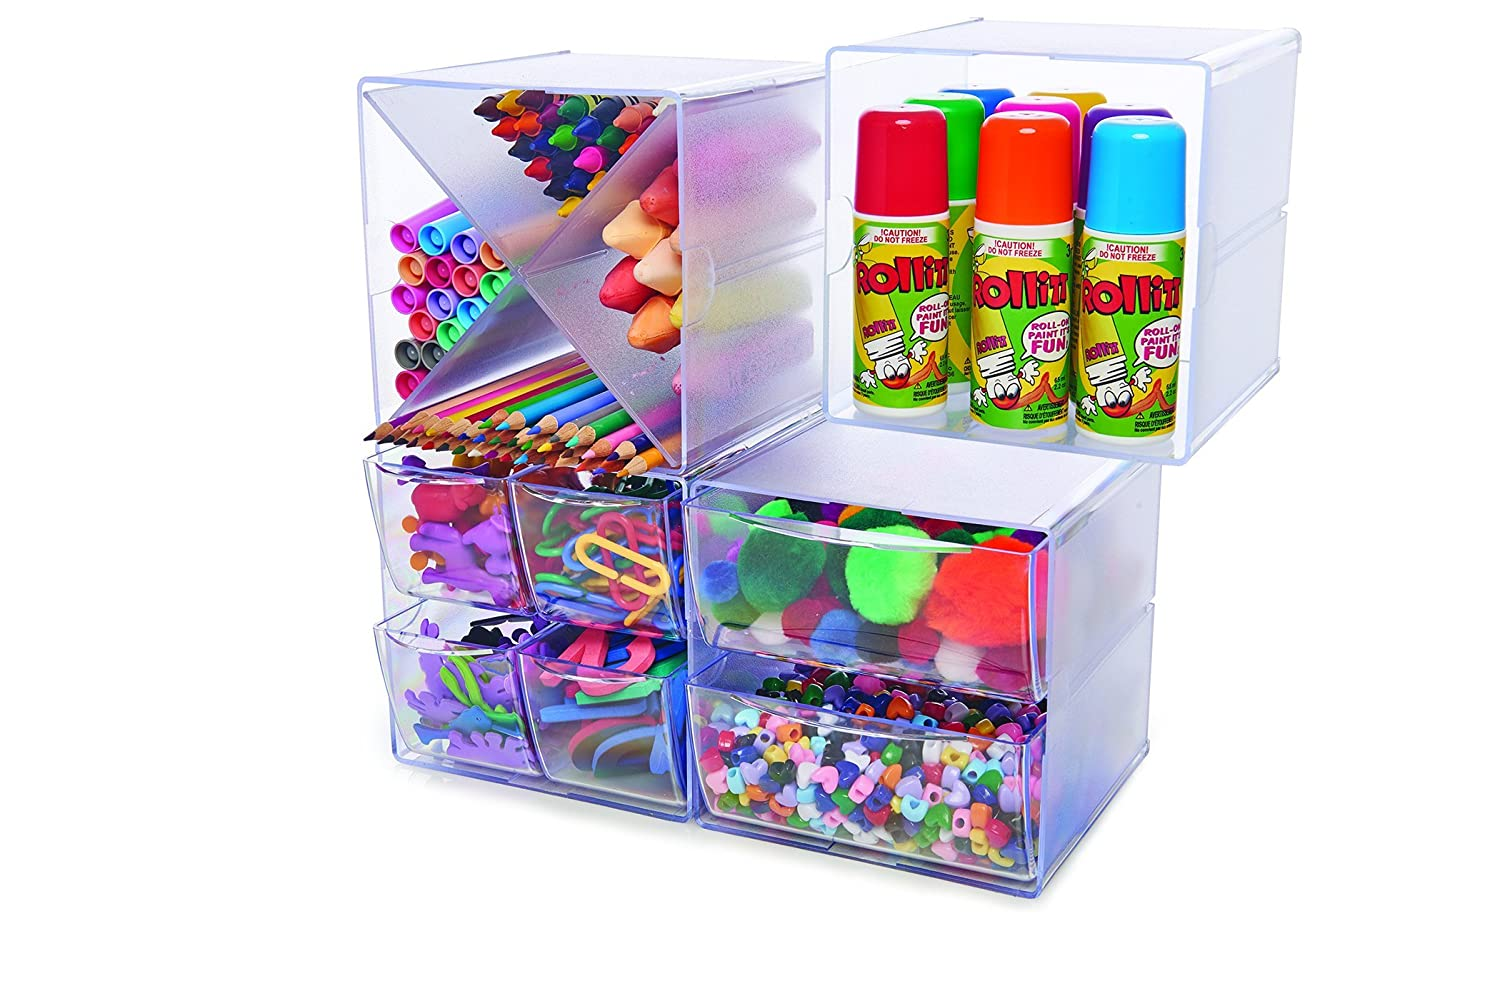 Deflecto Desk Cube Organizer with Drawer, 7 x 6 x 6 Inches, Clear (350801) Deflect-o Products